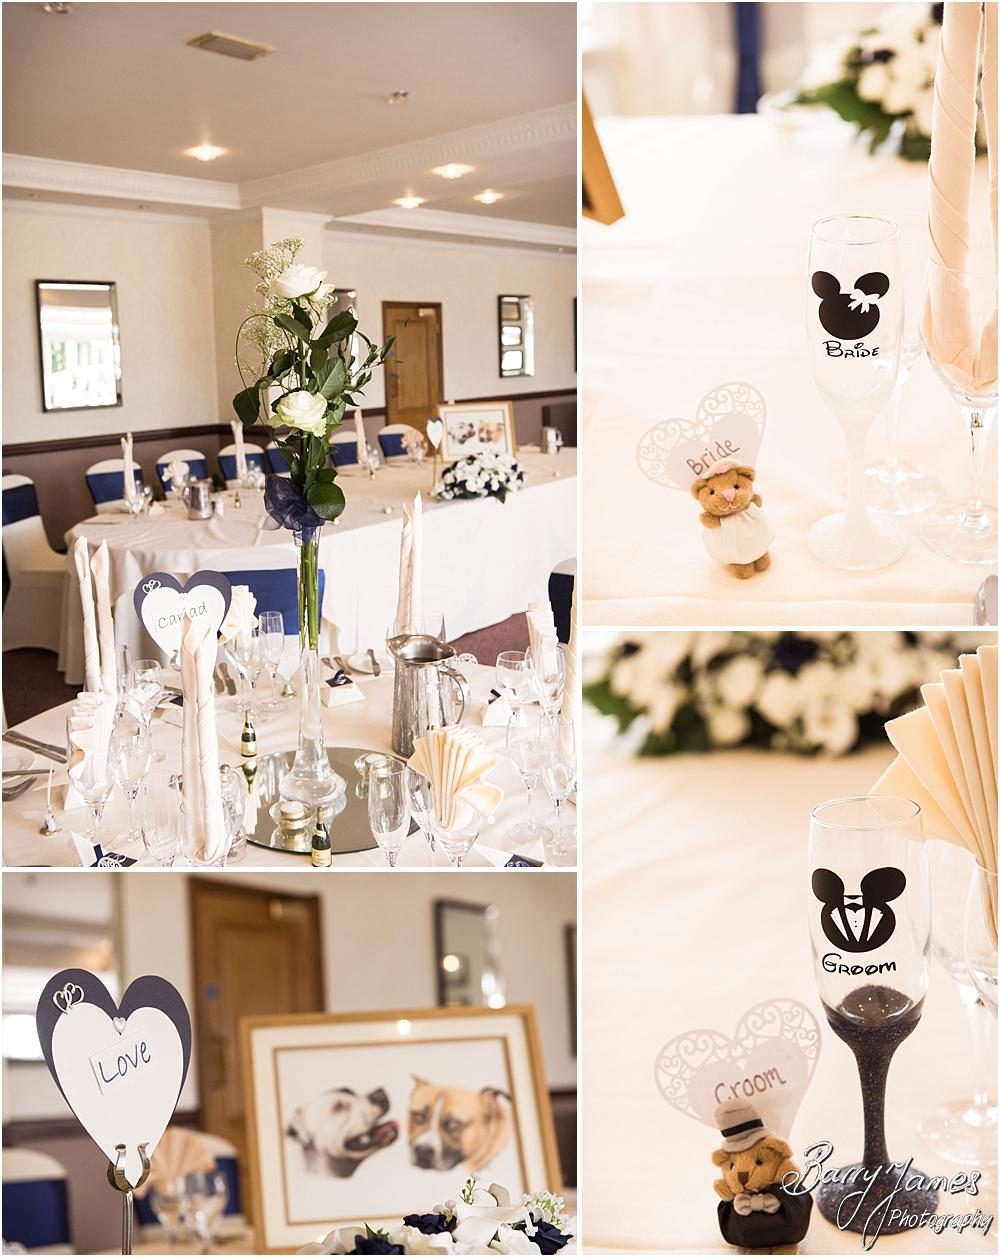 Beautiful room decoration from Design Elegance at The Moat House in Acton Trussell by Penkridge Wedding Photographer Barry James